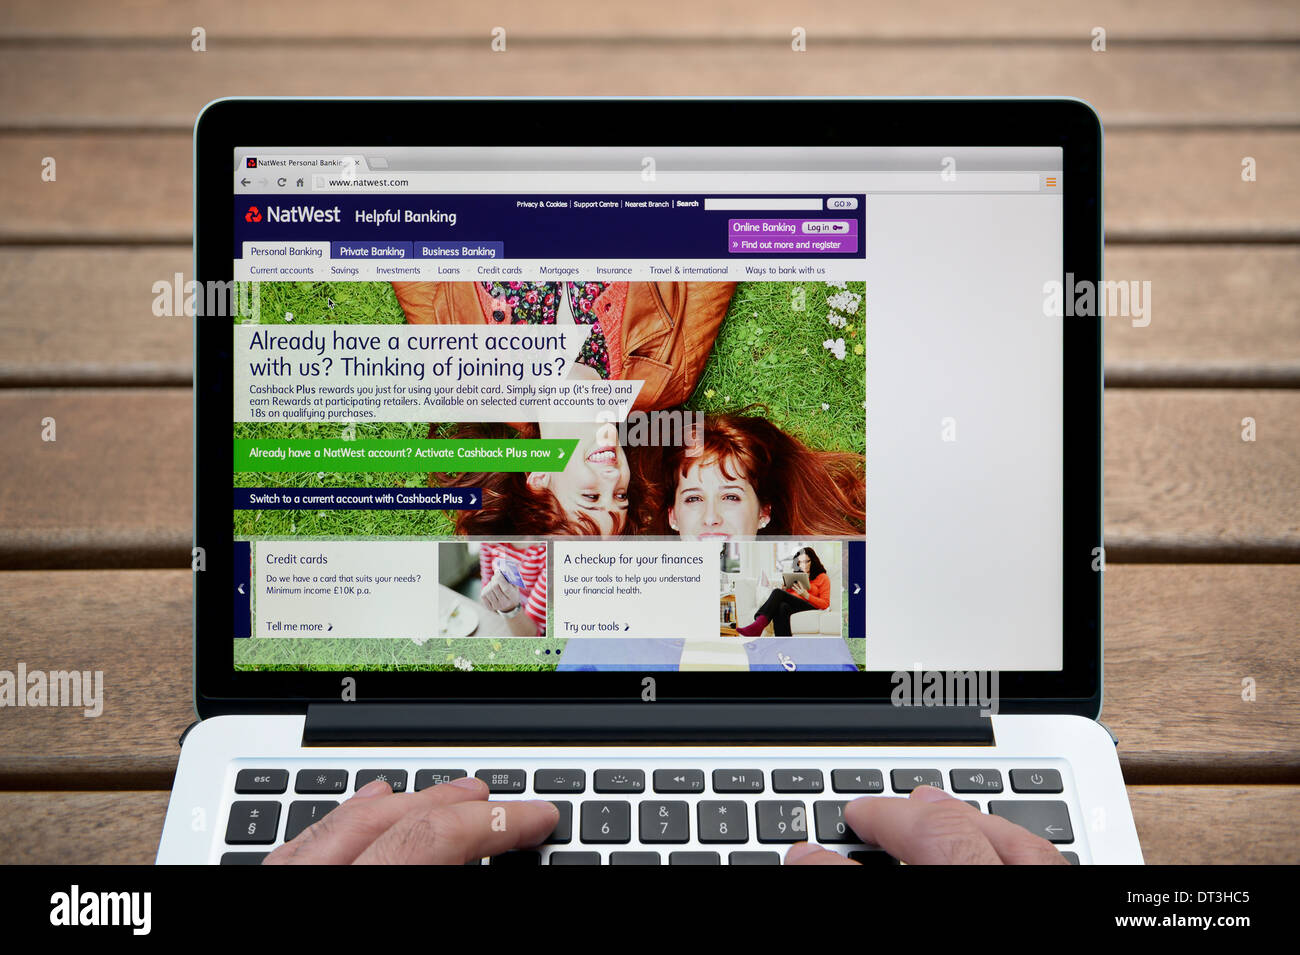 Business credit card natwest online choice image card design and wonderful natwest business credit card contact images business natwest business credit card activation images card design reheart Choice Image